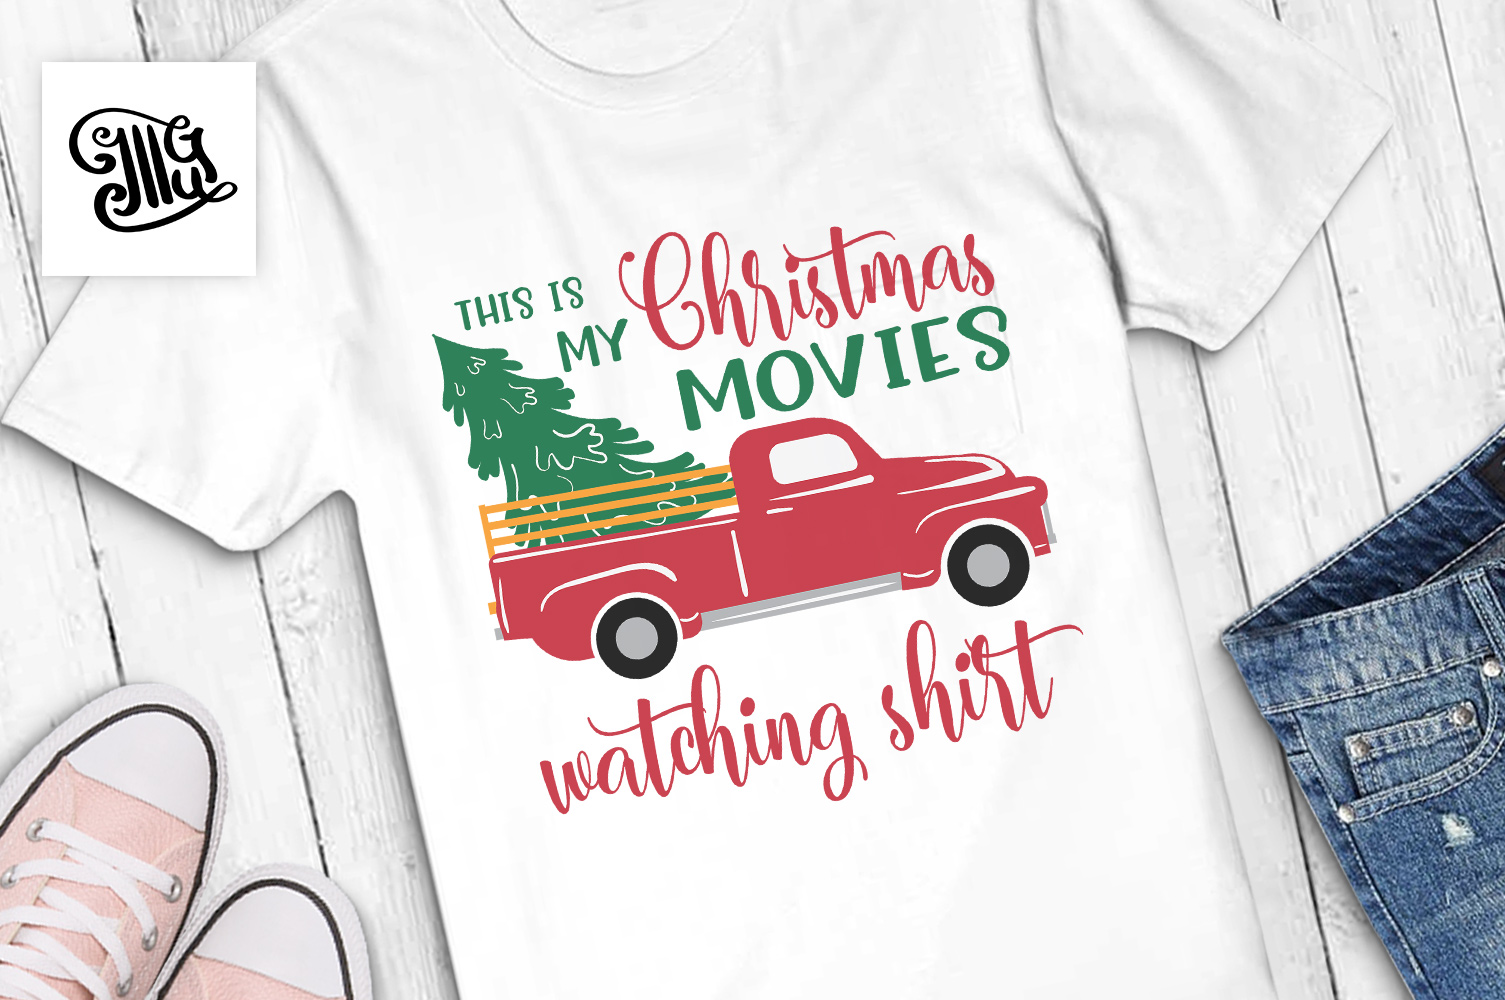 This is my Christmas movies watching shirt example image 1